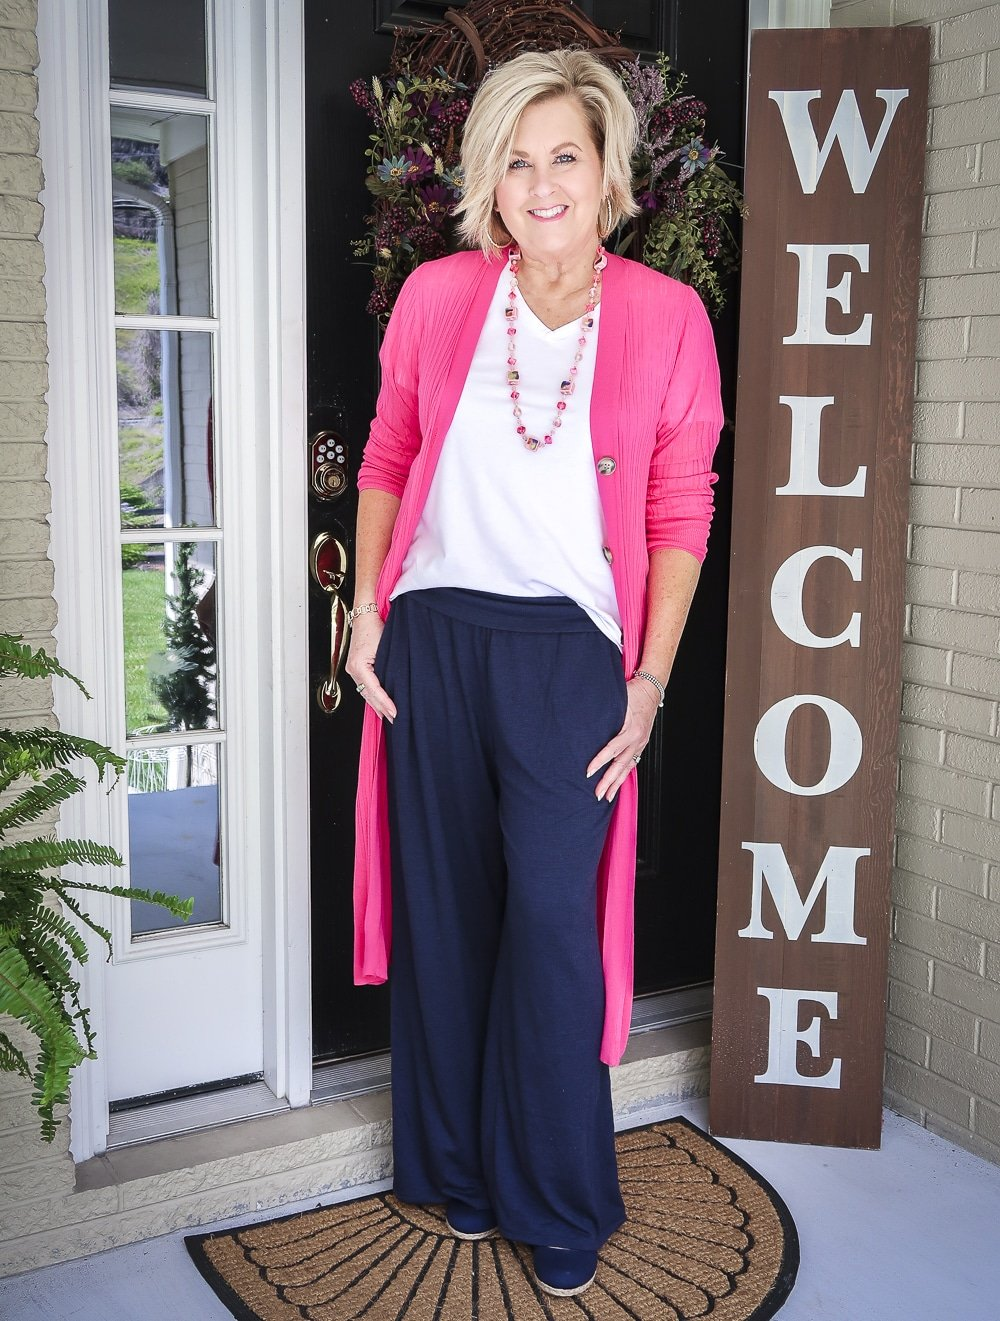 Fashion Blogger 50 Is Not Old wearing a hot pink cardigan with a white v-neck t-shirt, and navy lounge pants